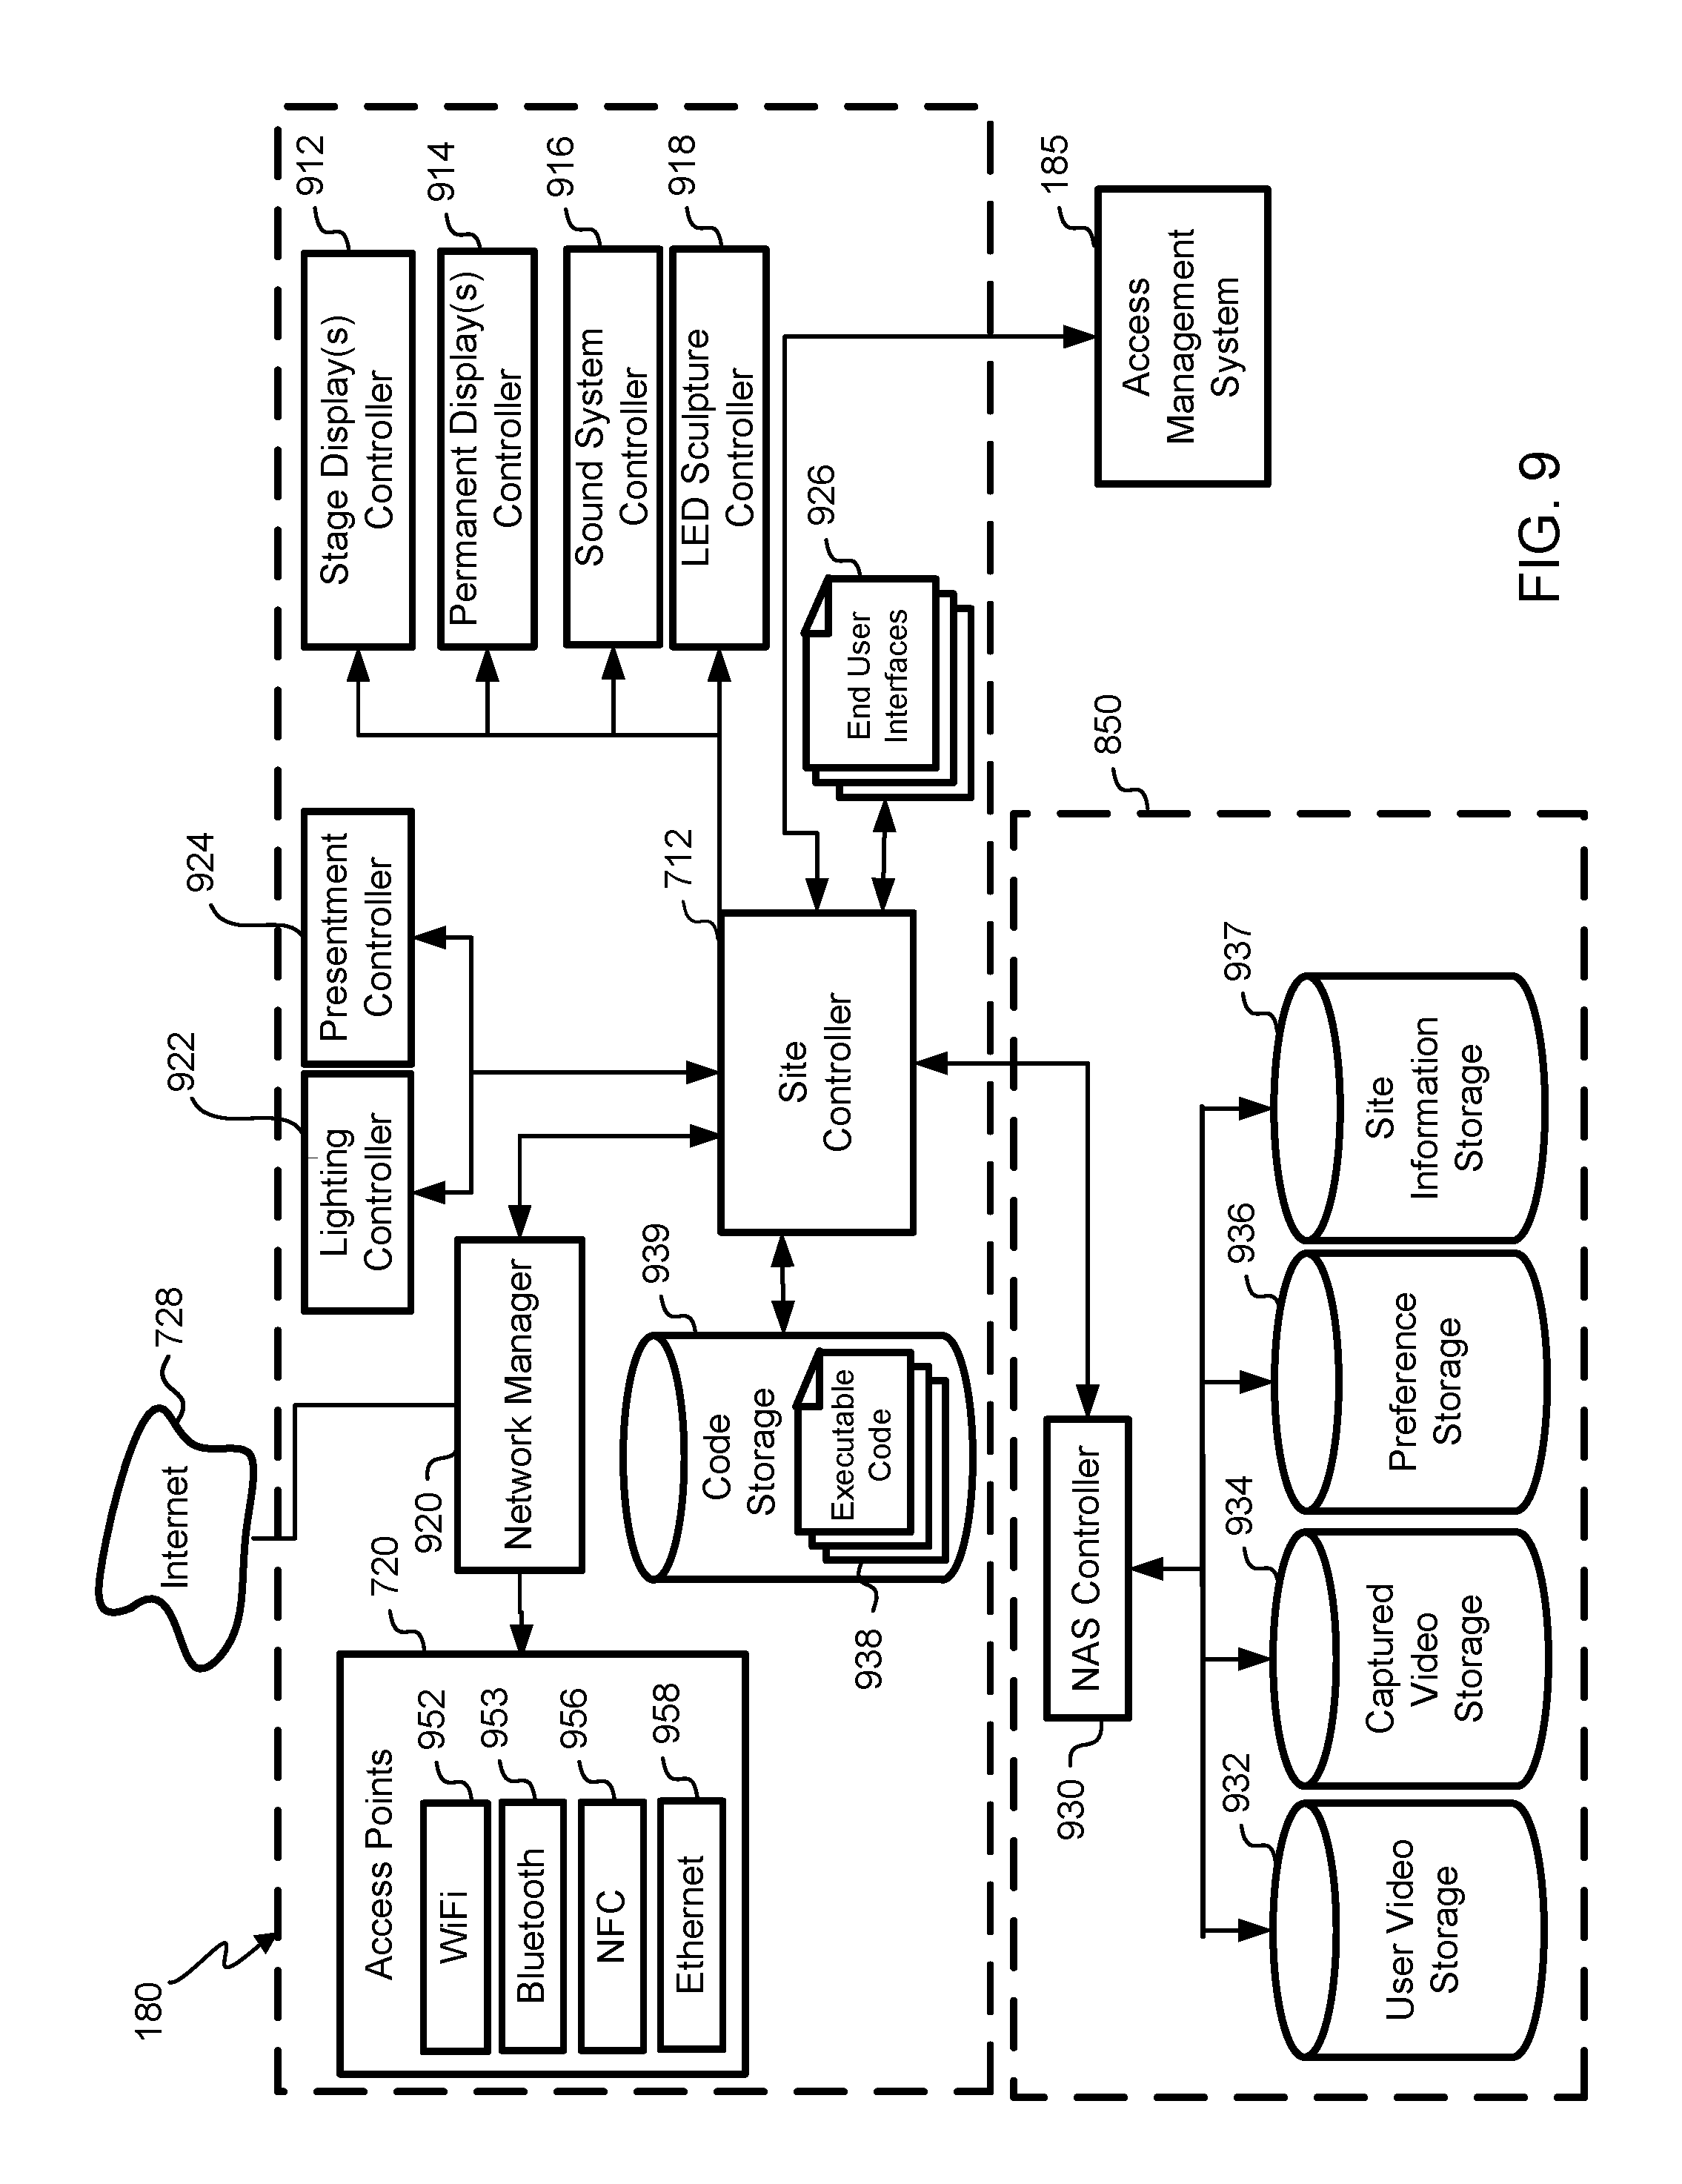 Patent Us 9912653 B2 Nokia 2690 Circuit Diagram 0 Petitions